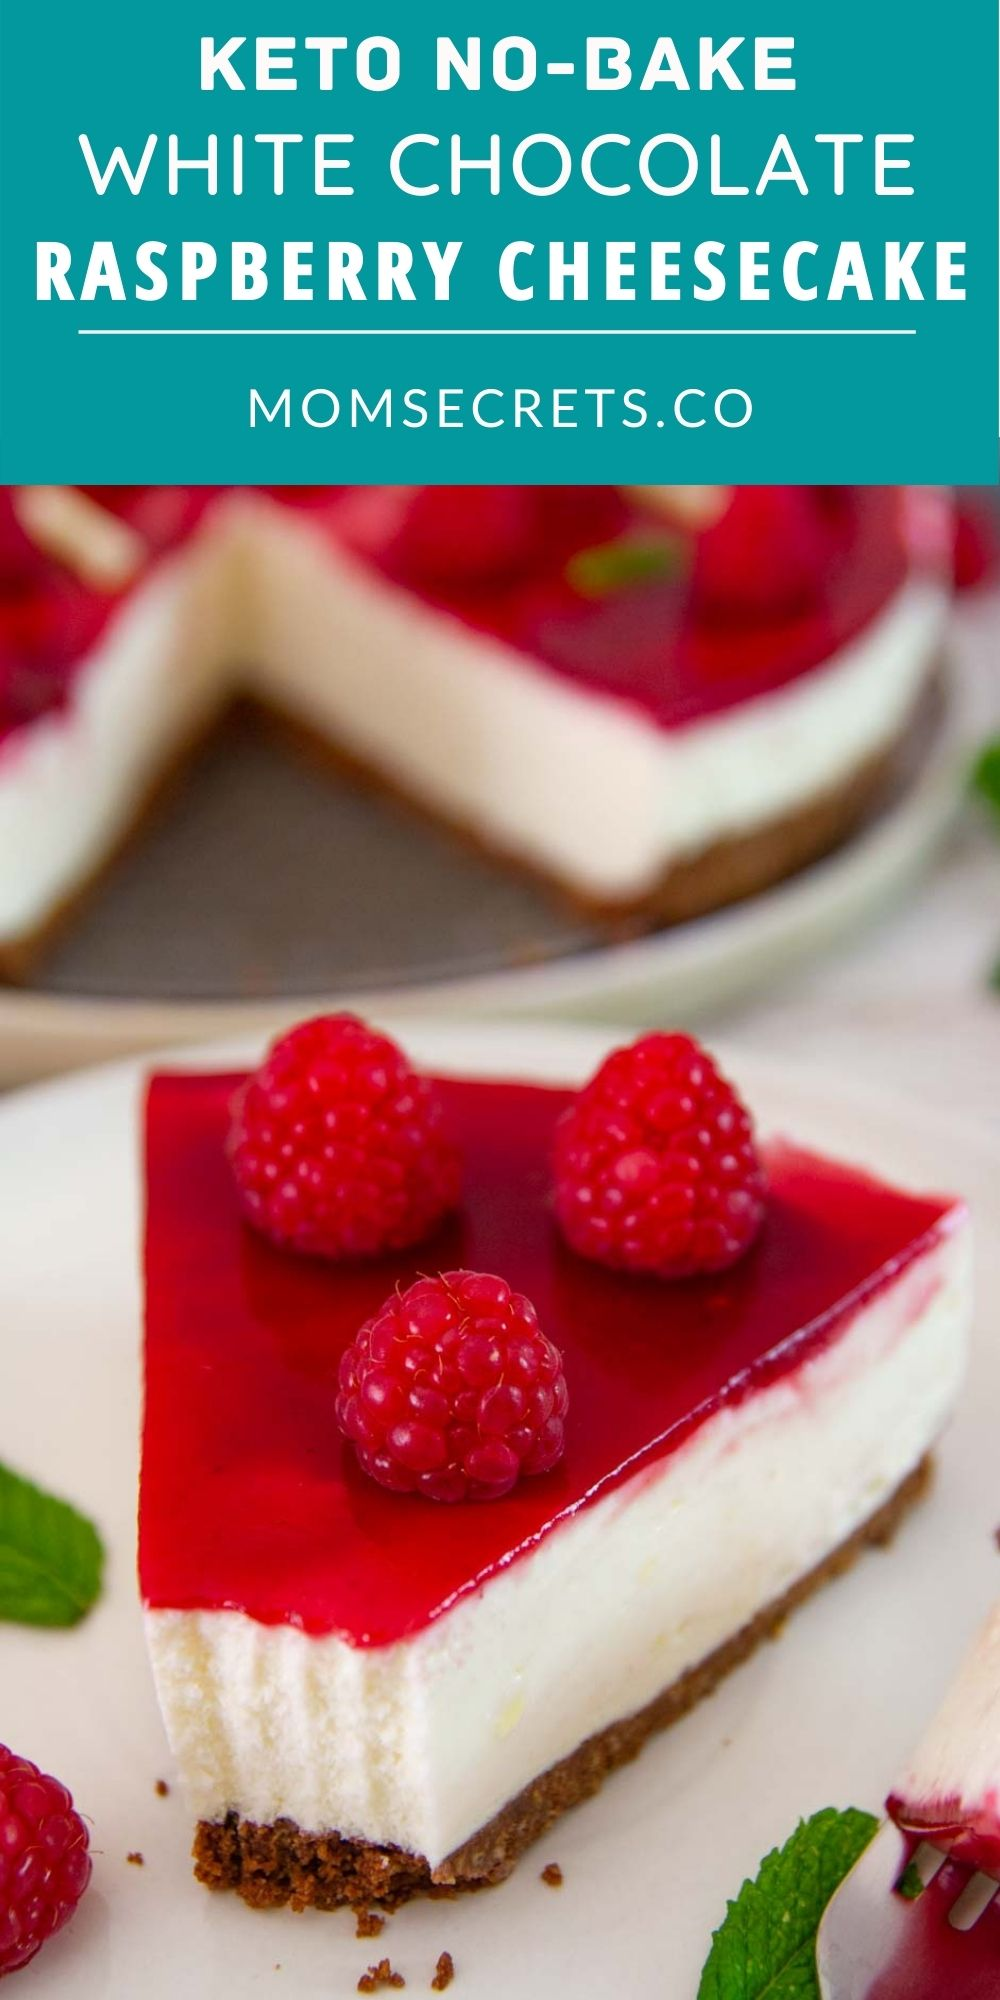 No-Bake Keto White Chocolate Raspberry Cheesecake is a smooth and creamy, sugar-free low carb easy dessert for summer! And you don't even have to turn on the oven.